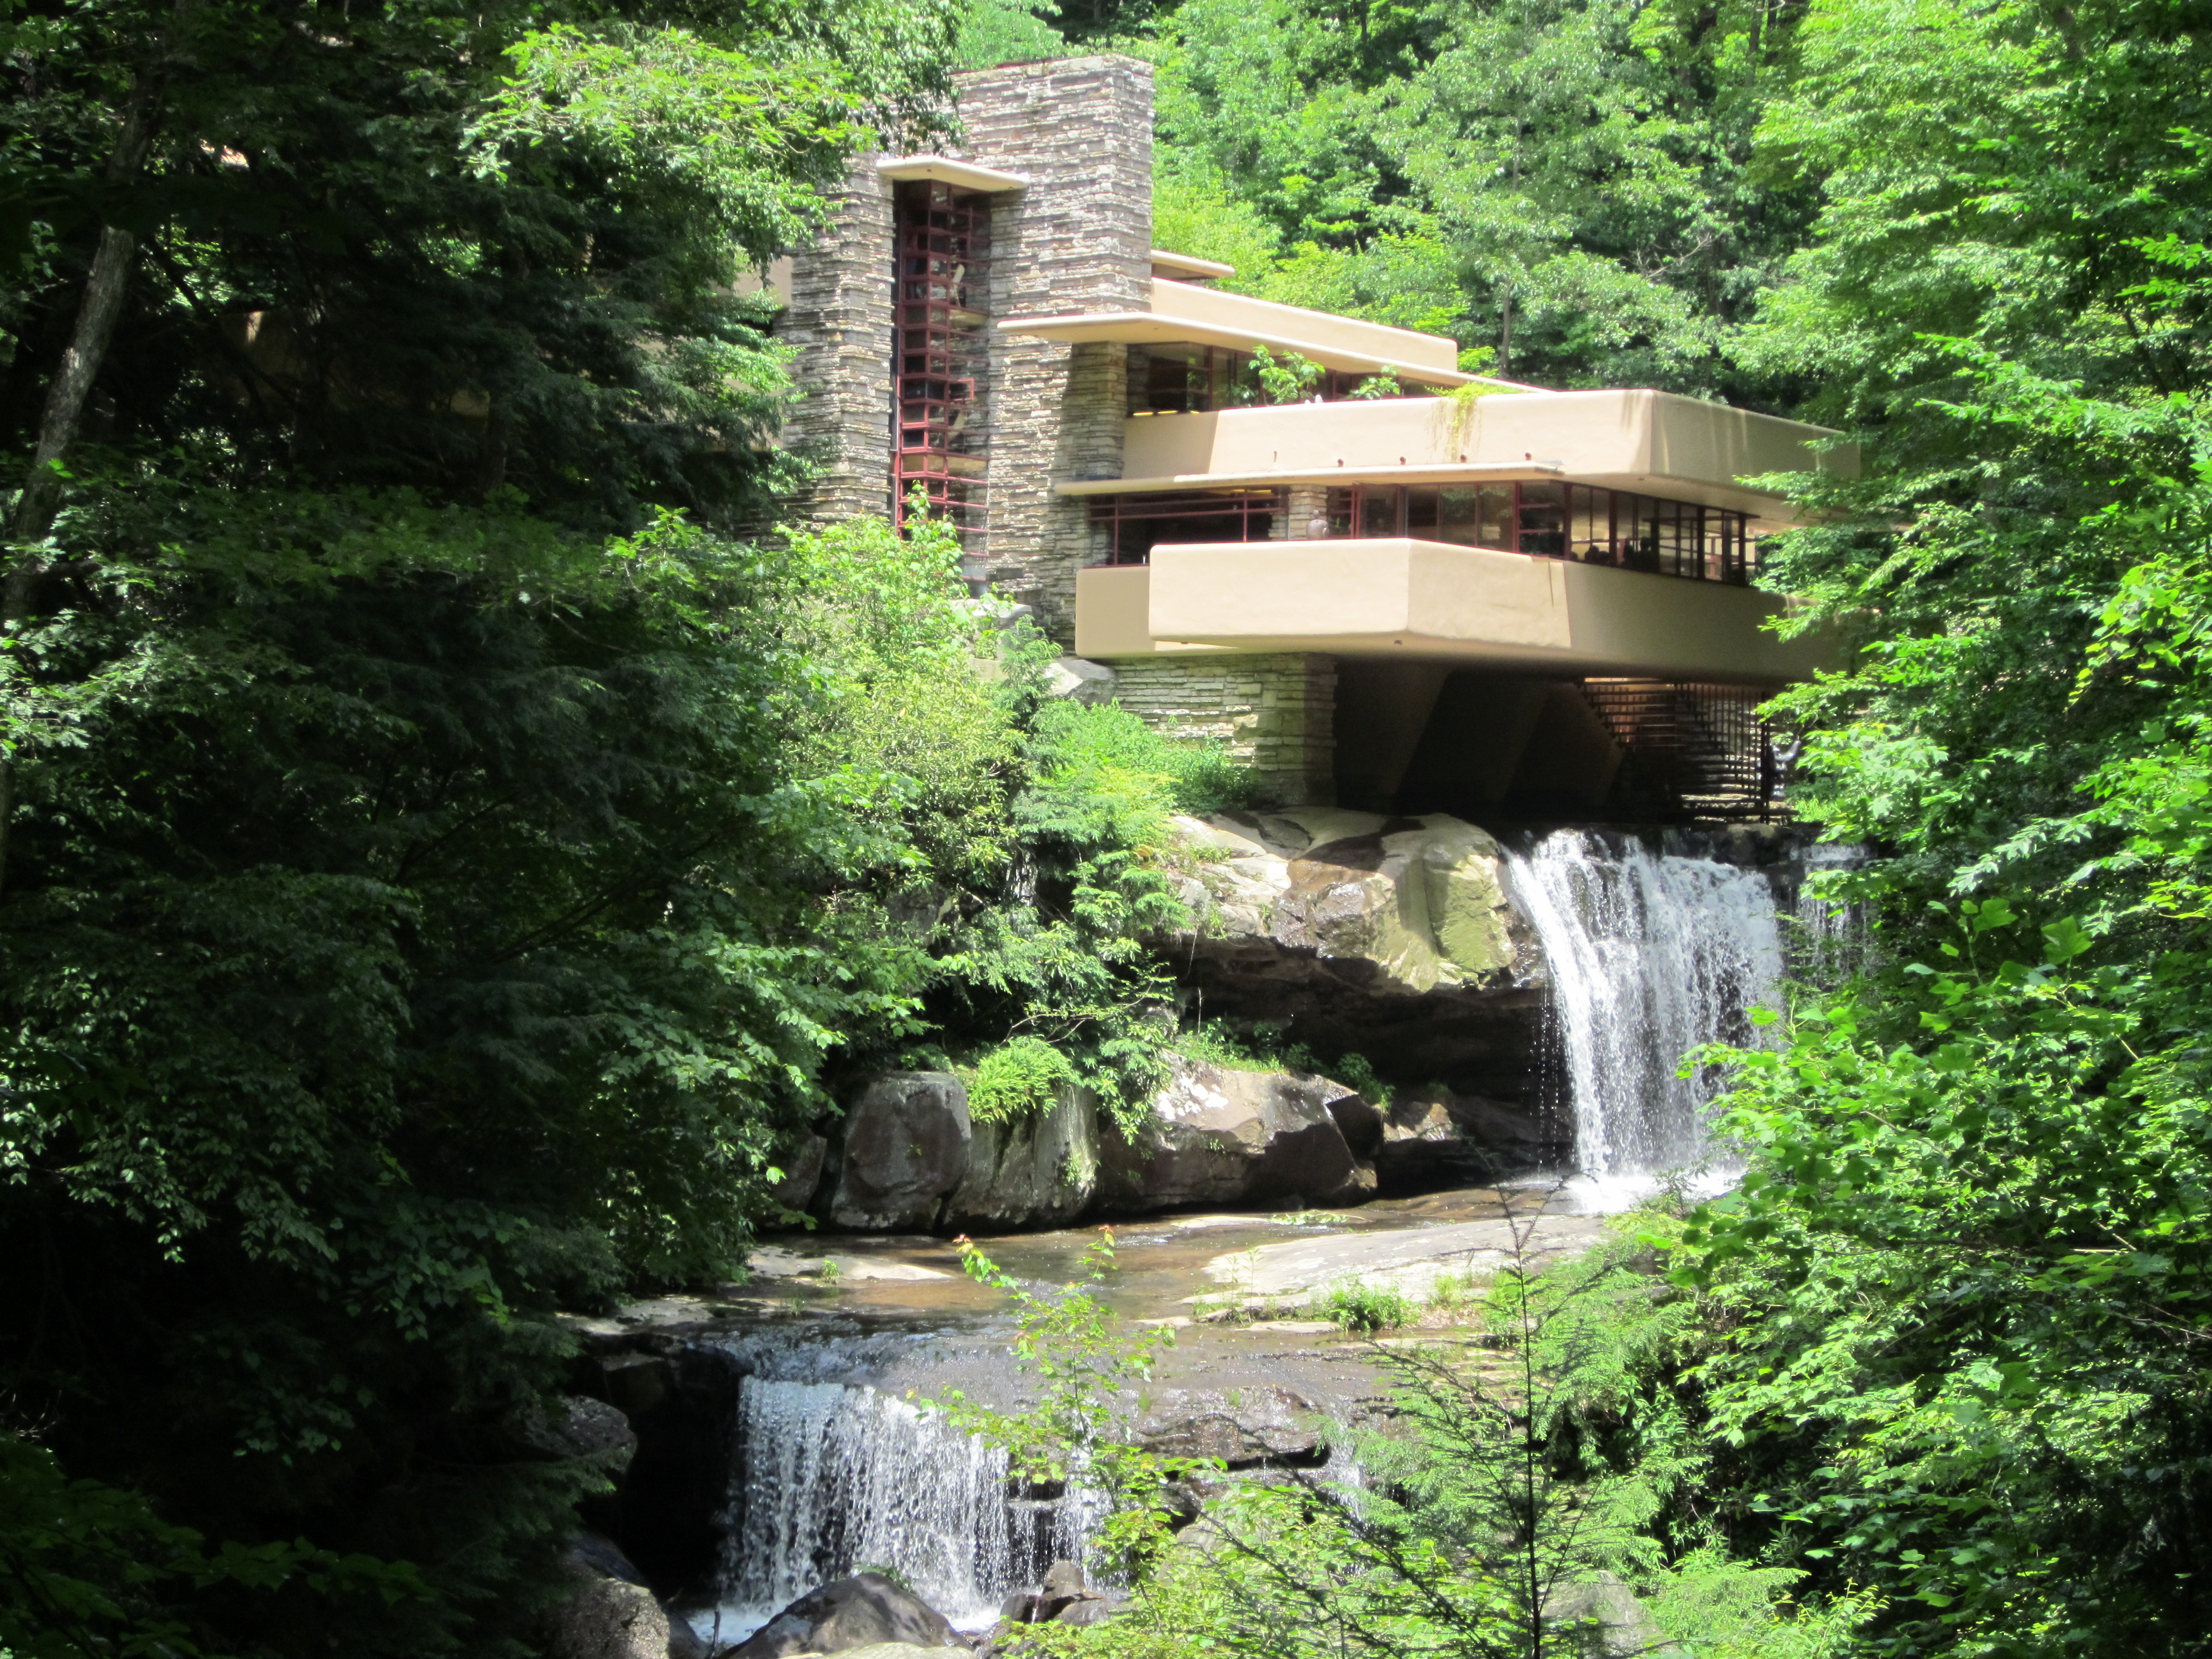 Frank Lloyd Wright Falling Water Wallpaper Personal Christopher Barzak